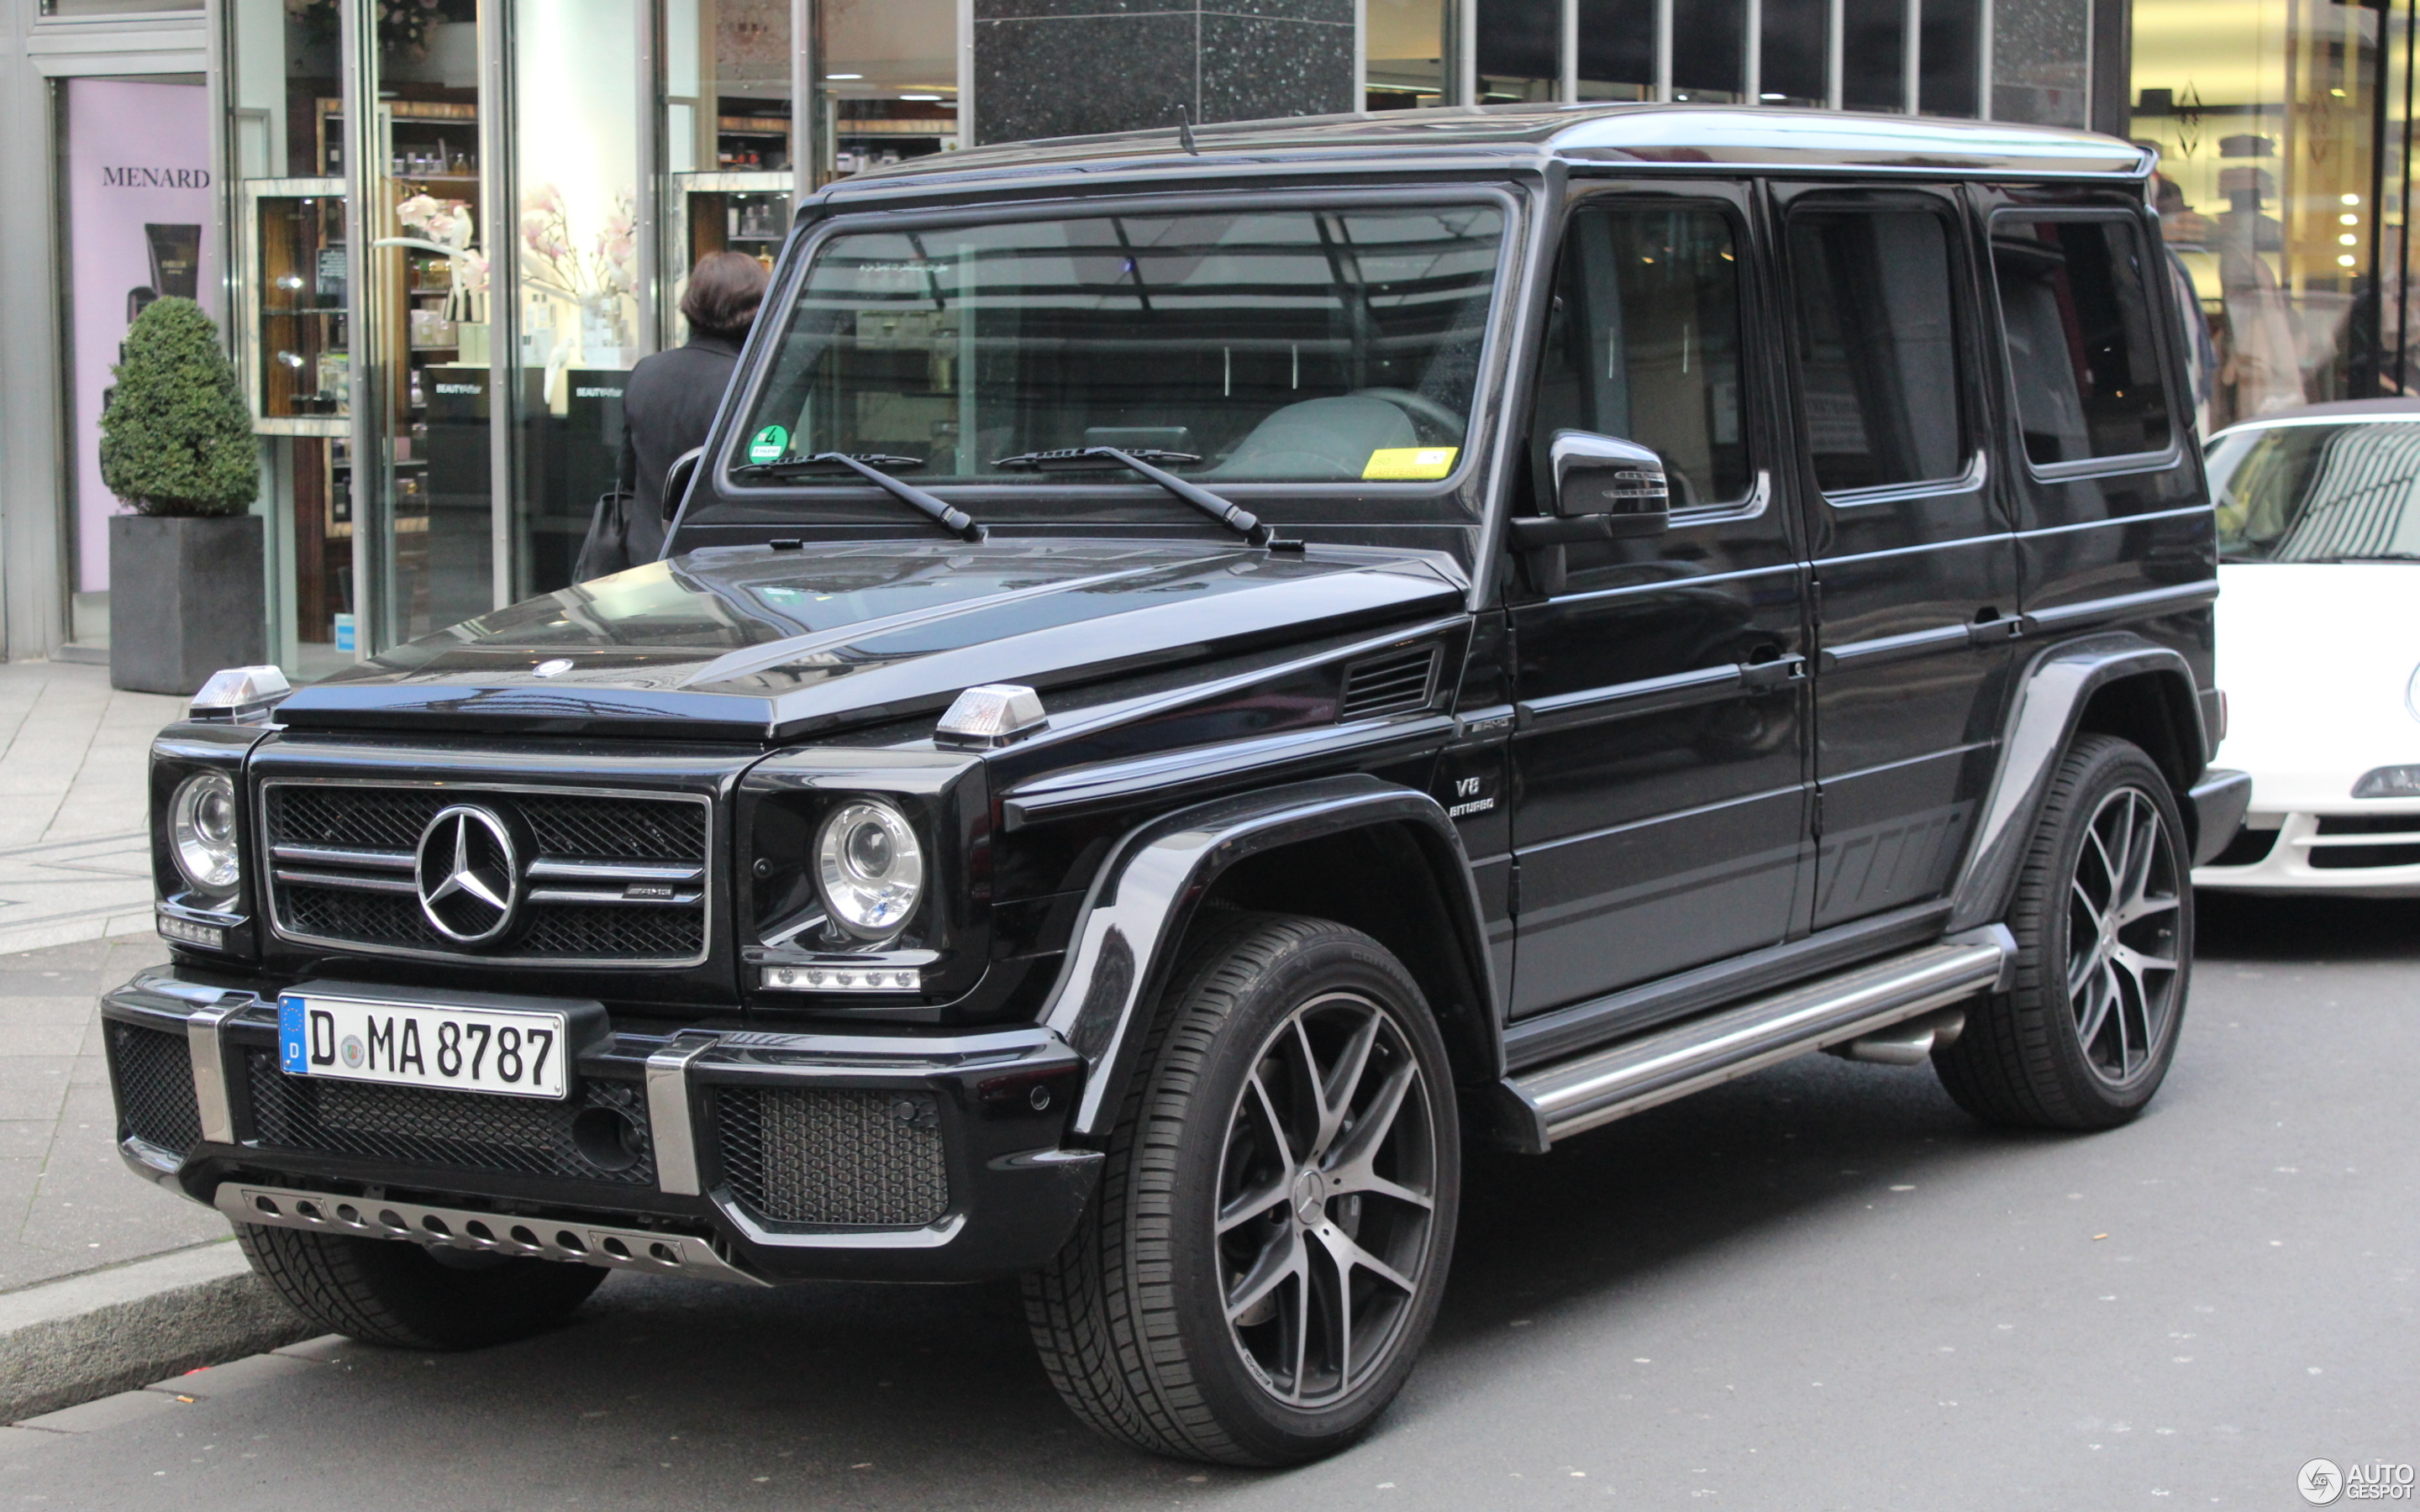 Mercedes-AMG G 63 2016 Edition 463 - 10 June 2017 - Autogespot